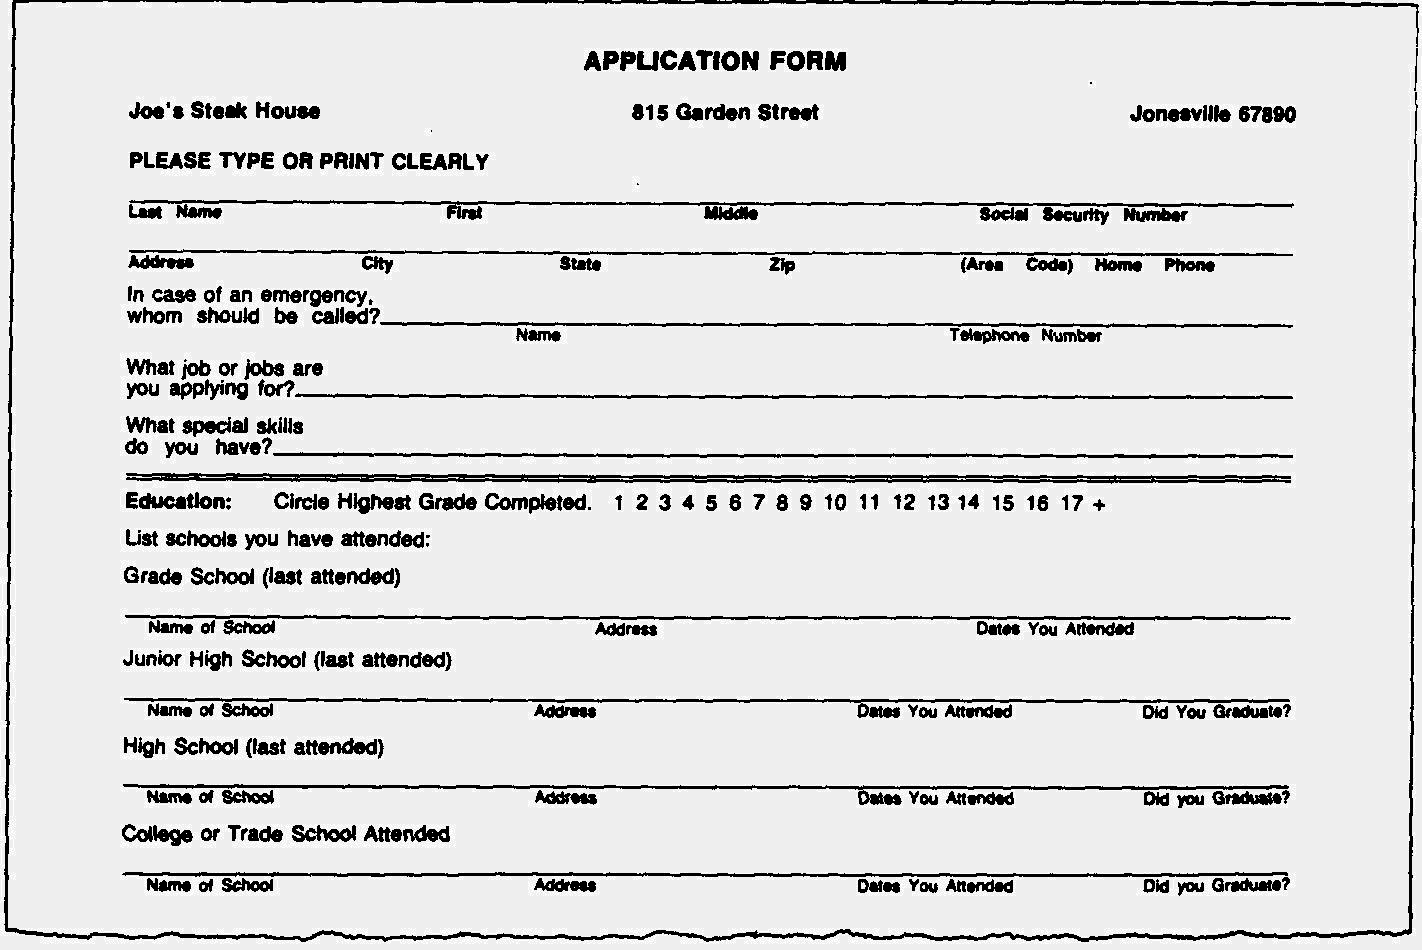 doc resume forms ideas about resume form more blank resume forms to fill out resume resume forms